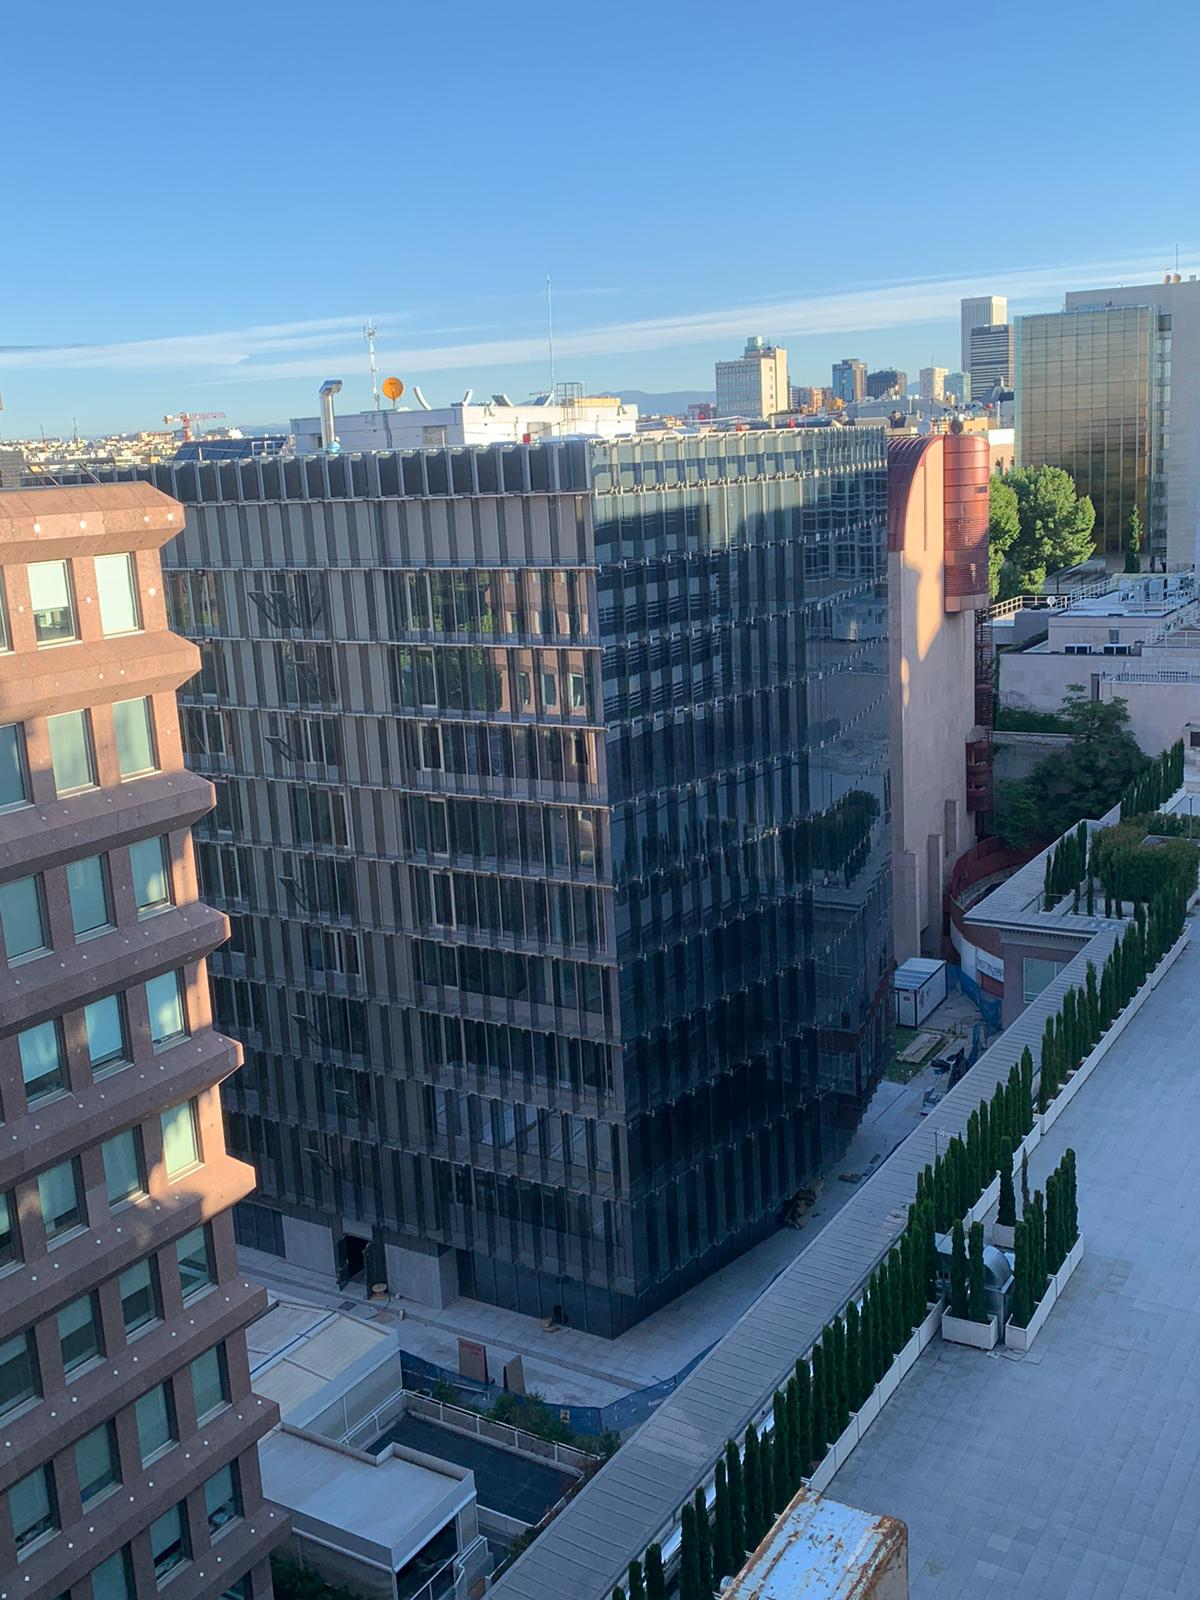 New facade as part of the refurbishment of the Insurance Compensation Fund of the Ministry of Economy and Finance building located at Paseo de la Castellana 44